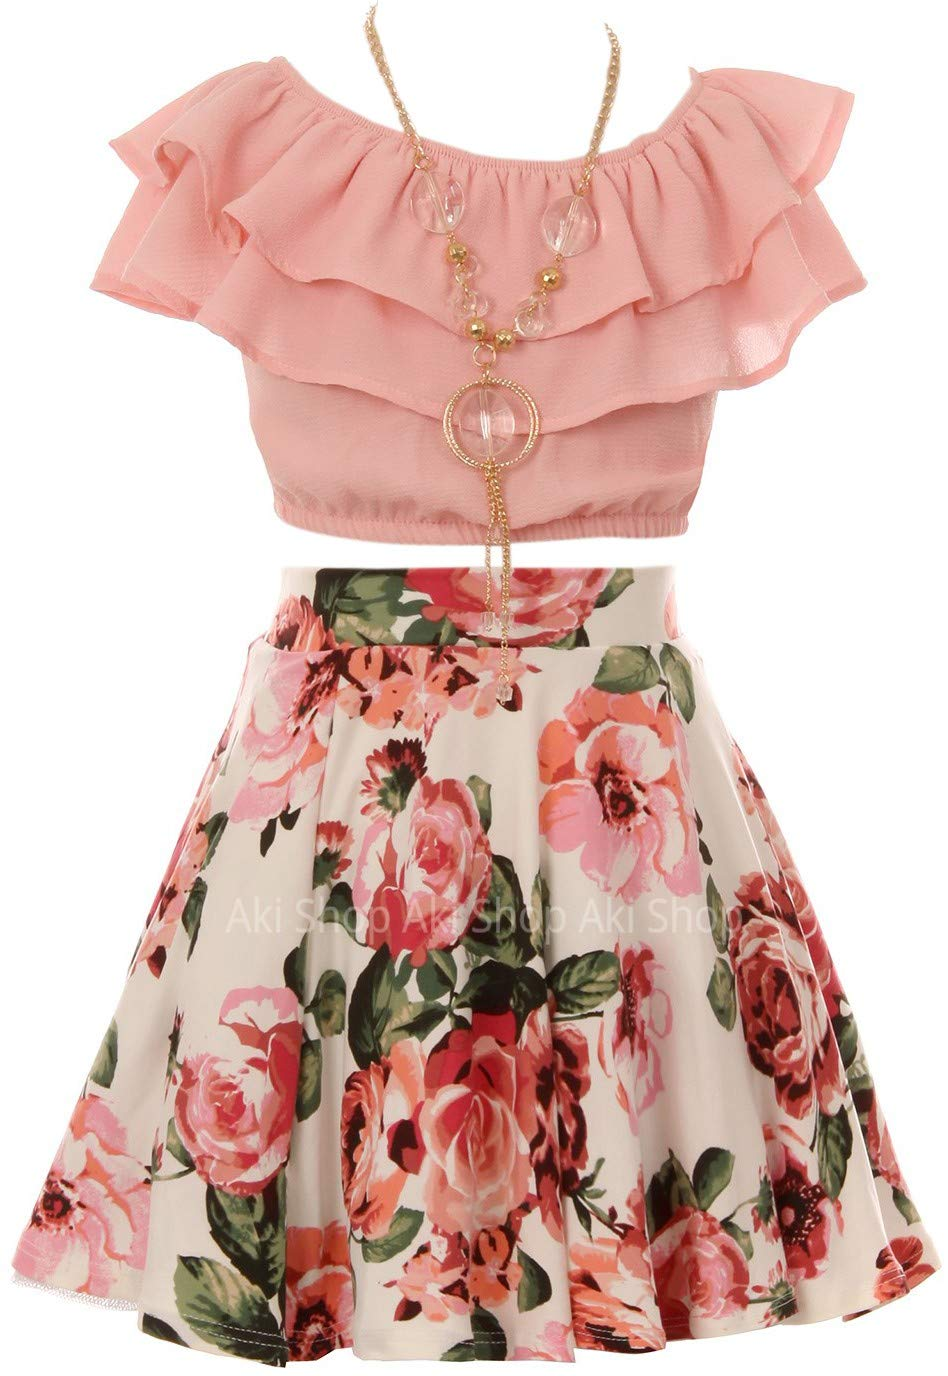 Cold Shoulder Crop Top Ruffle Layered Top Flower Girl Skirt Sets for Big Girl Blush 10 JKS 2130S by Aki_Dress (Image #2)